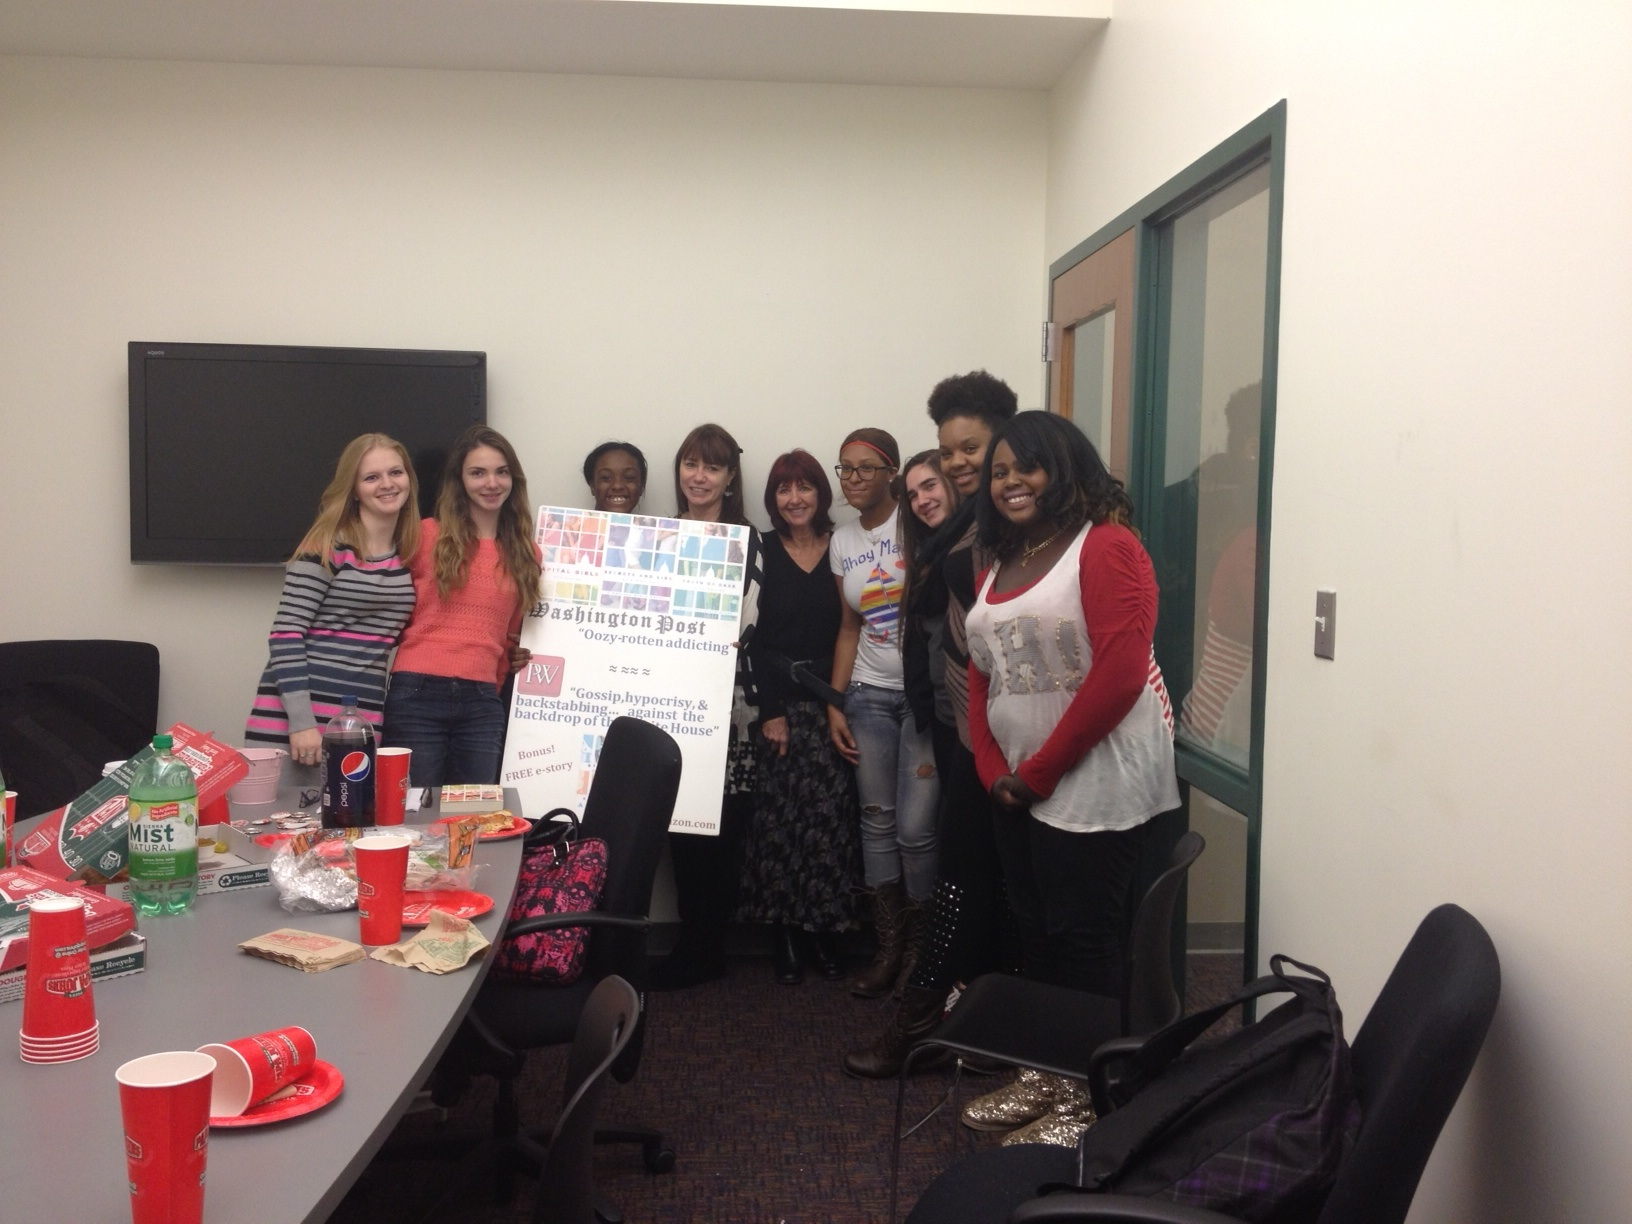 The authors pose with students following a book club meeting.